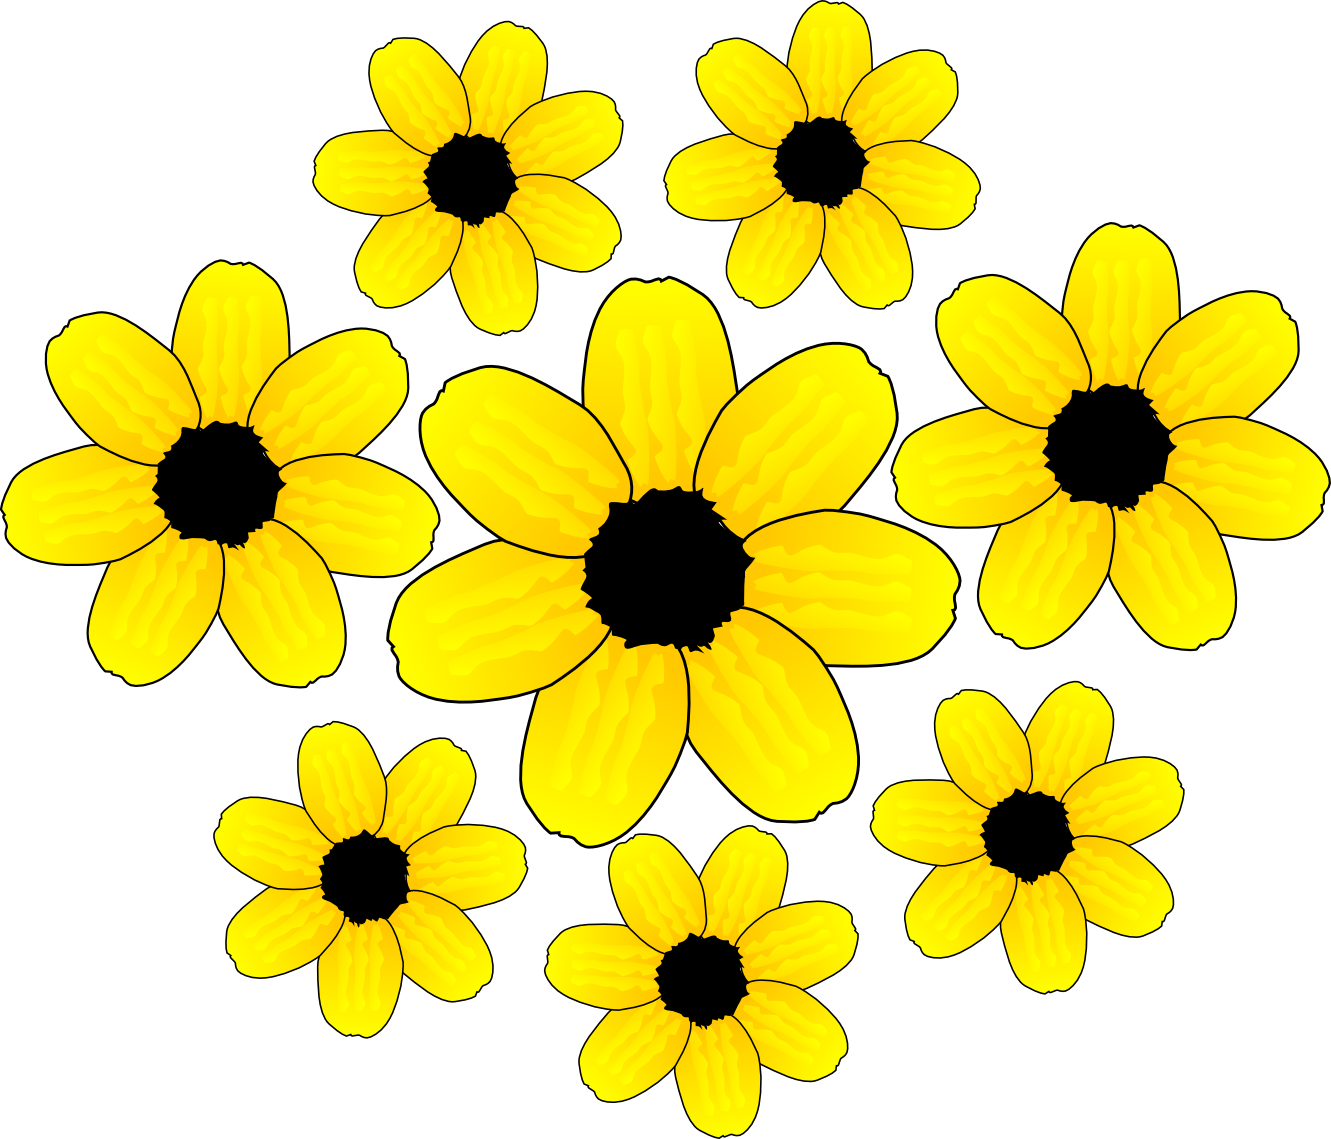 Flowers flower clipart flower accents flower graphics the 3.